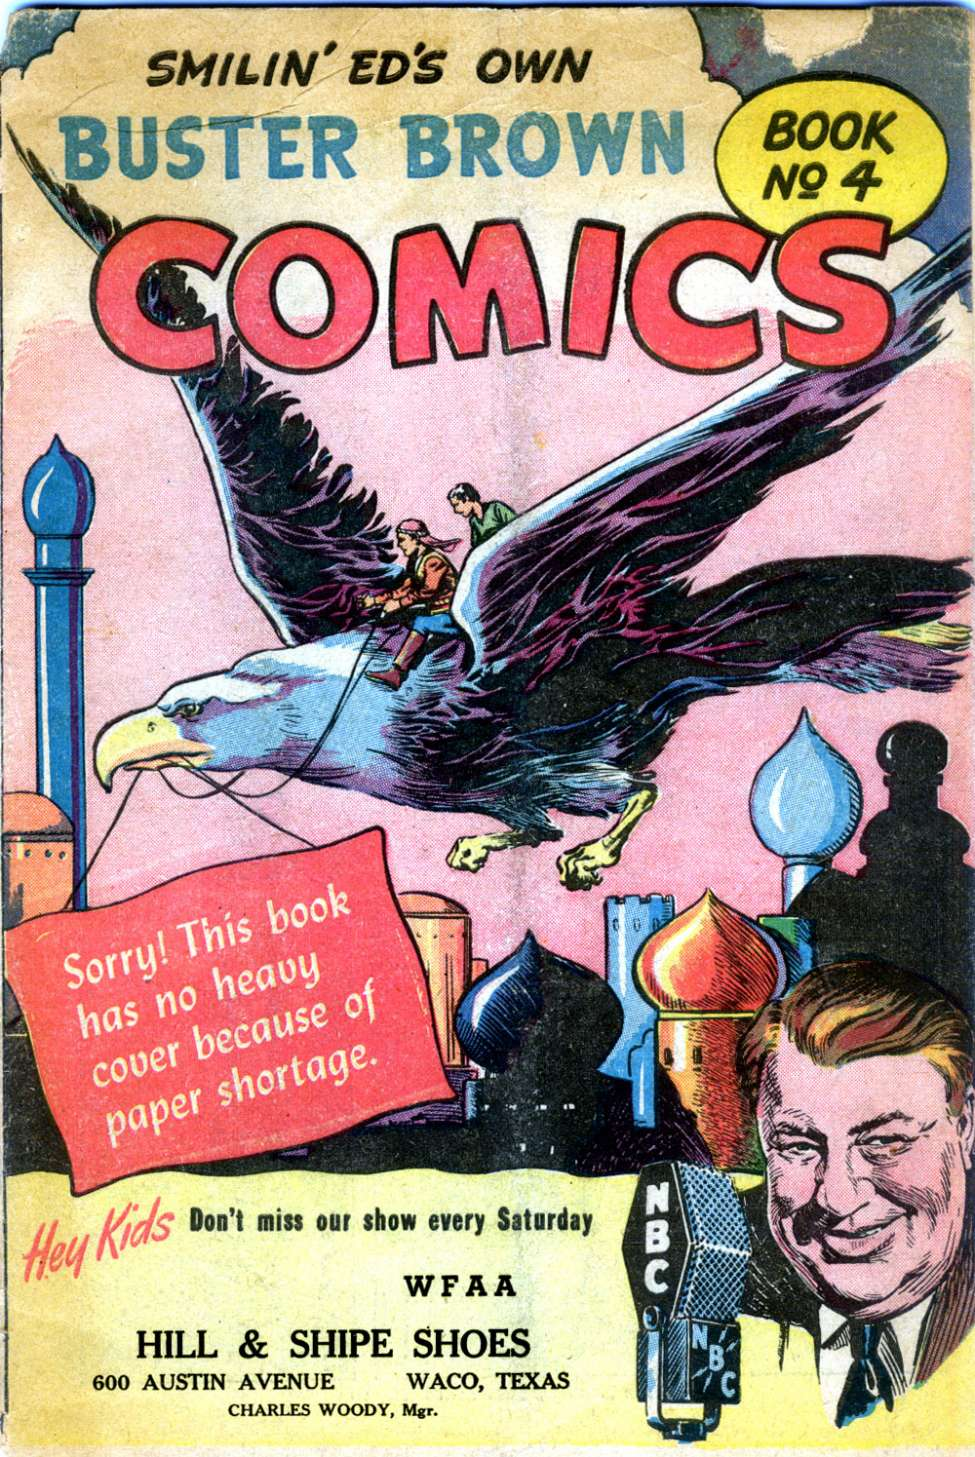 Comic Book Cover For Buster Brown Comic Book #4